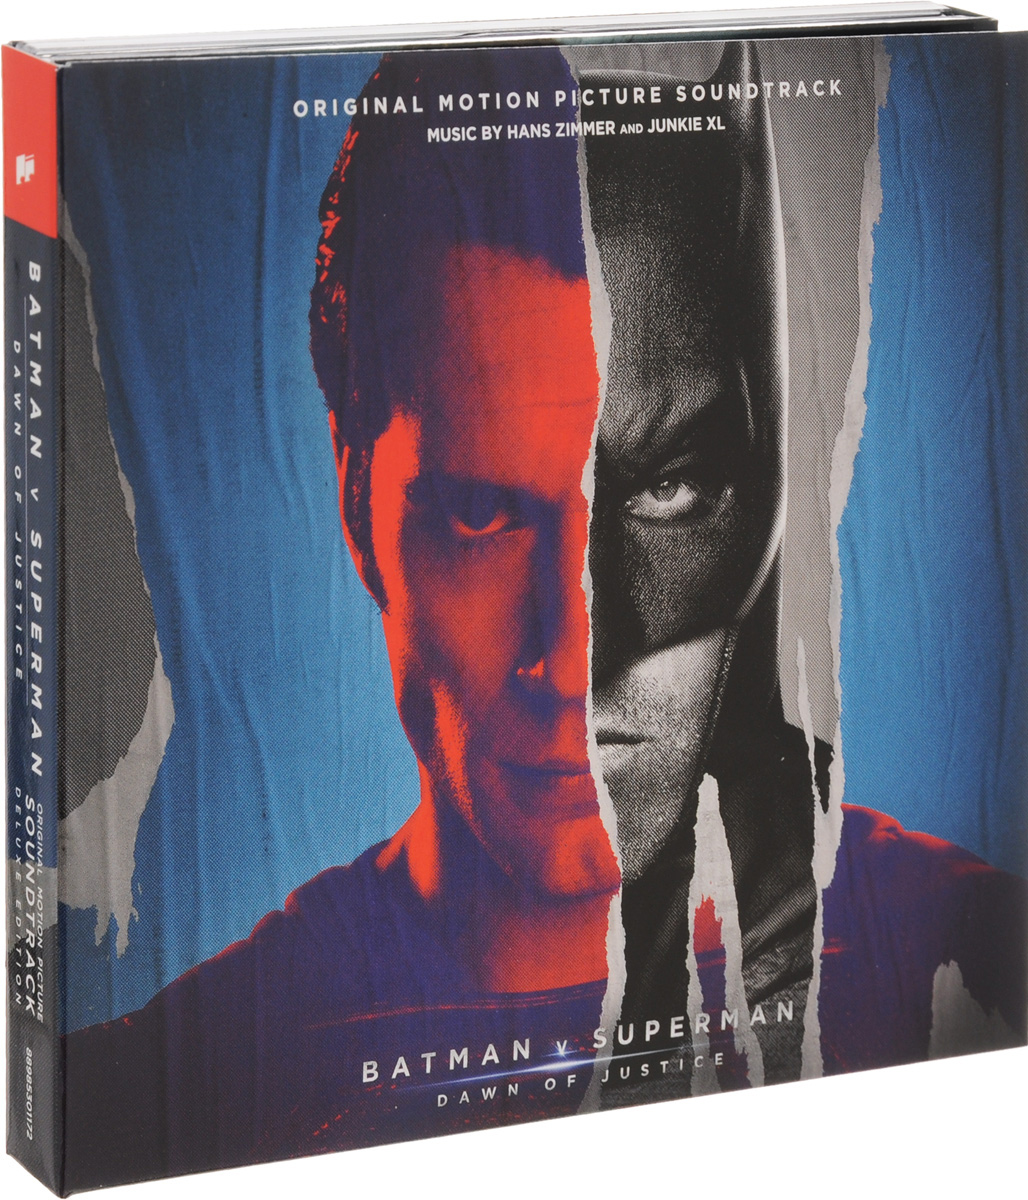 Zakazat.ru Hans Zimmer, Junkie XL. Batman V Superman. Dawn Of Justice. Original Motion Picture Soundtrack. Deluxe Edition (2 CD)